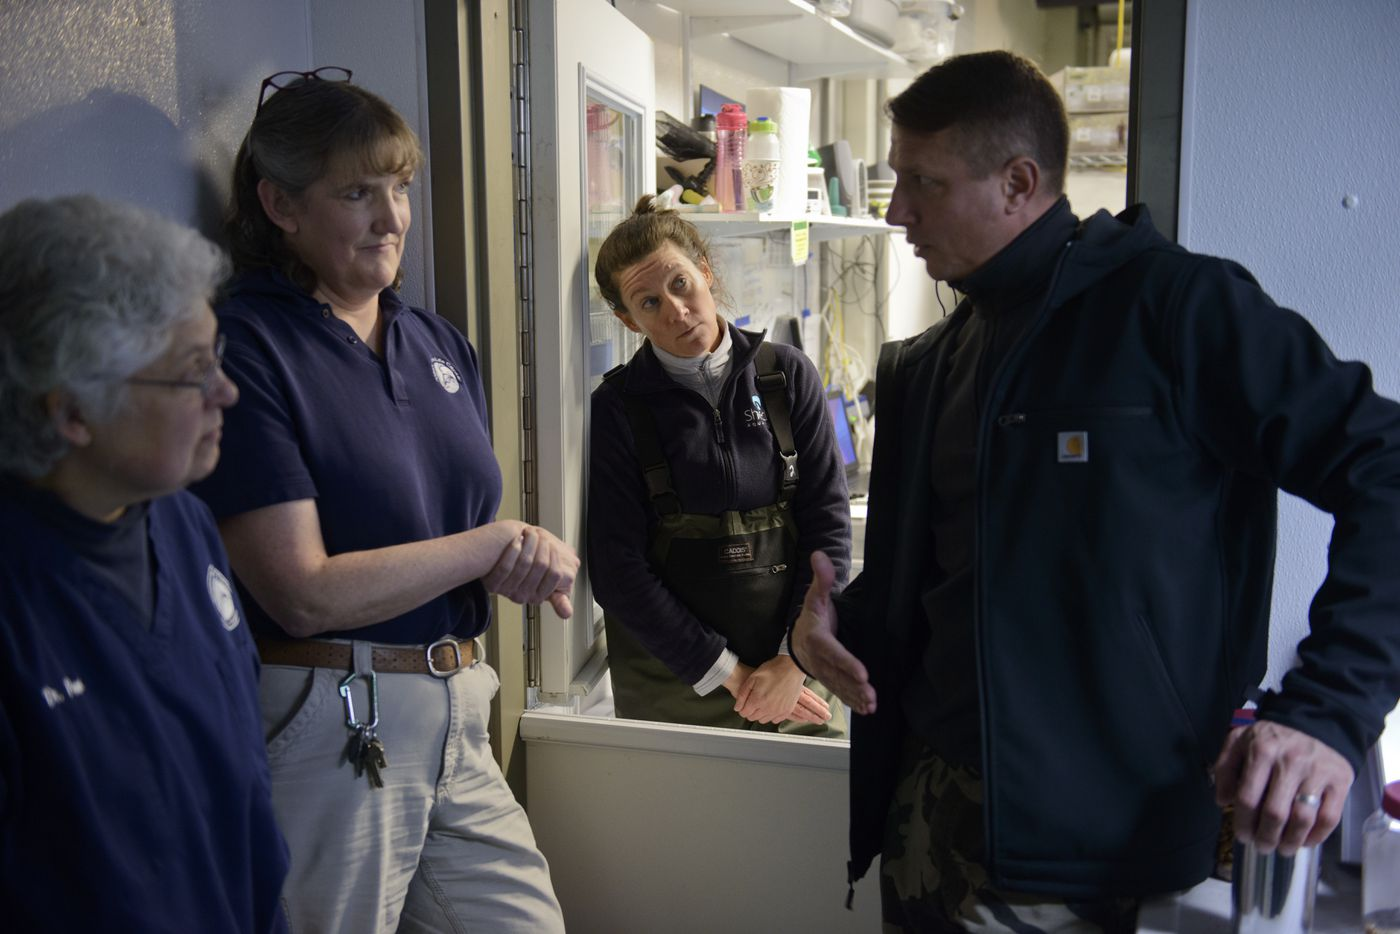 From left, Alaska SeaLife Center veterinarians Dr. Pam Tuomi and Dr. Carrie Goertz, talk with visiting aquarium professionals Jessica Whiton, of Shedd Aquarium, and George Biedenbach of Georgia Aquarium, on October 30, 2017. (Marc Lester / Alaska Dispatch News)